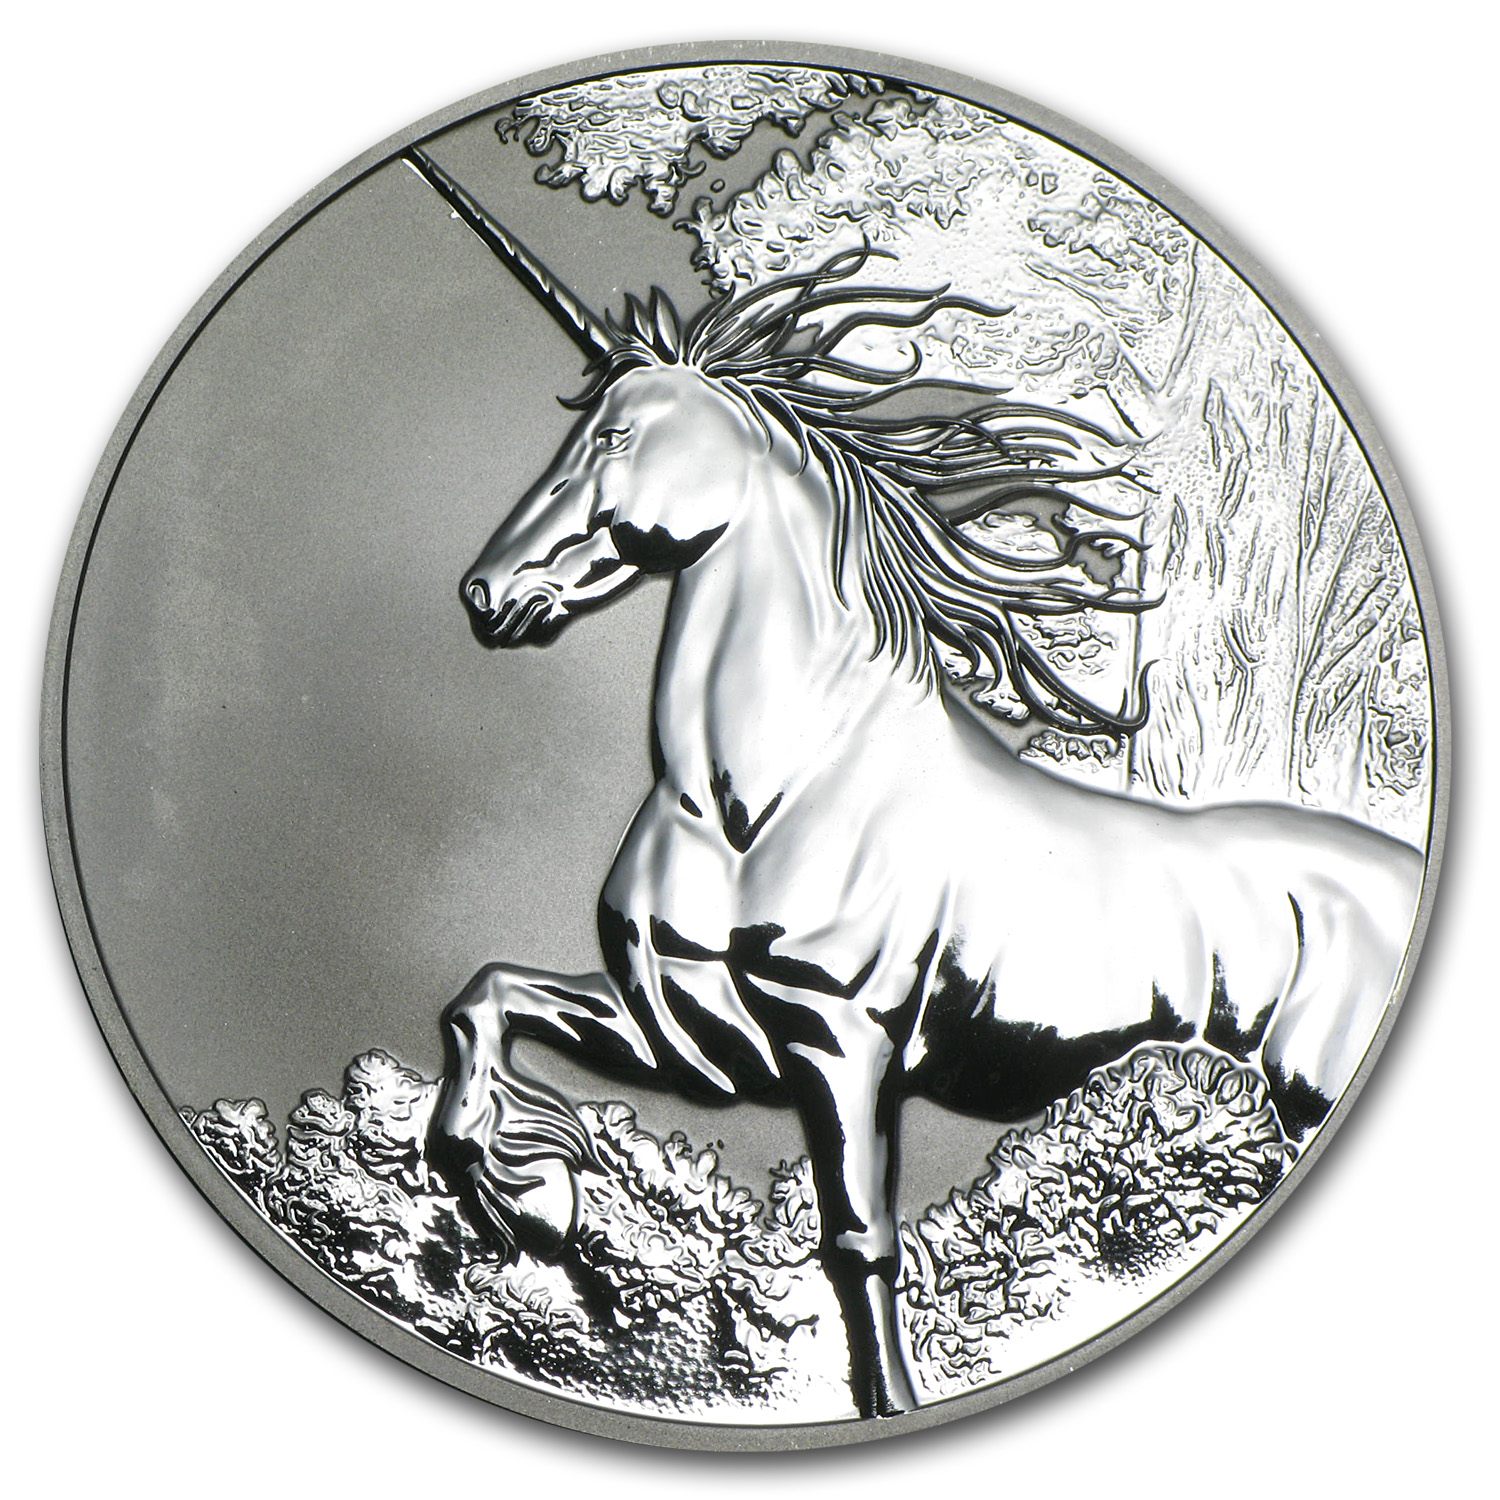 2014 Tokelau 1 oz Silver $5 Unicorn Reverse Proof